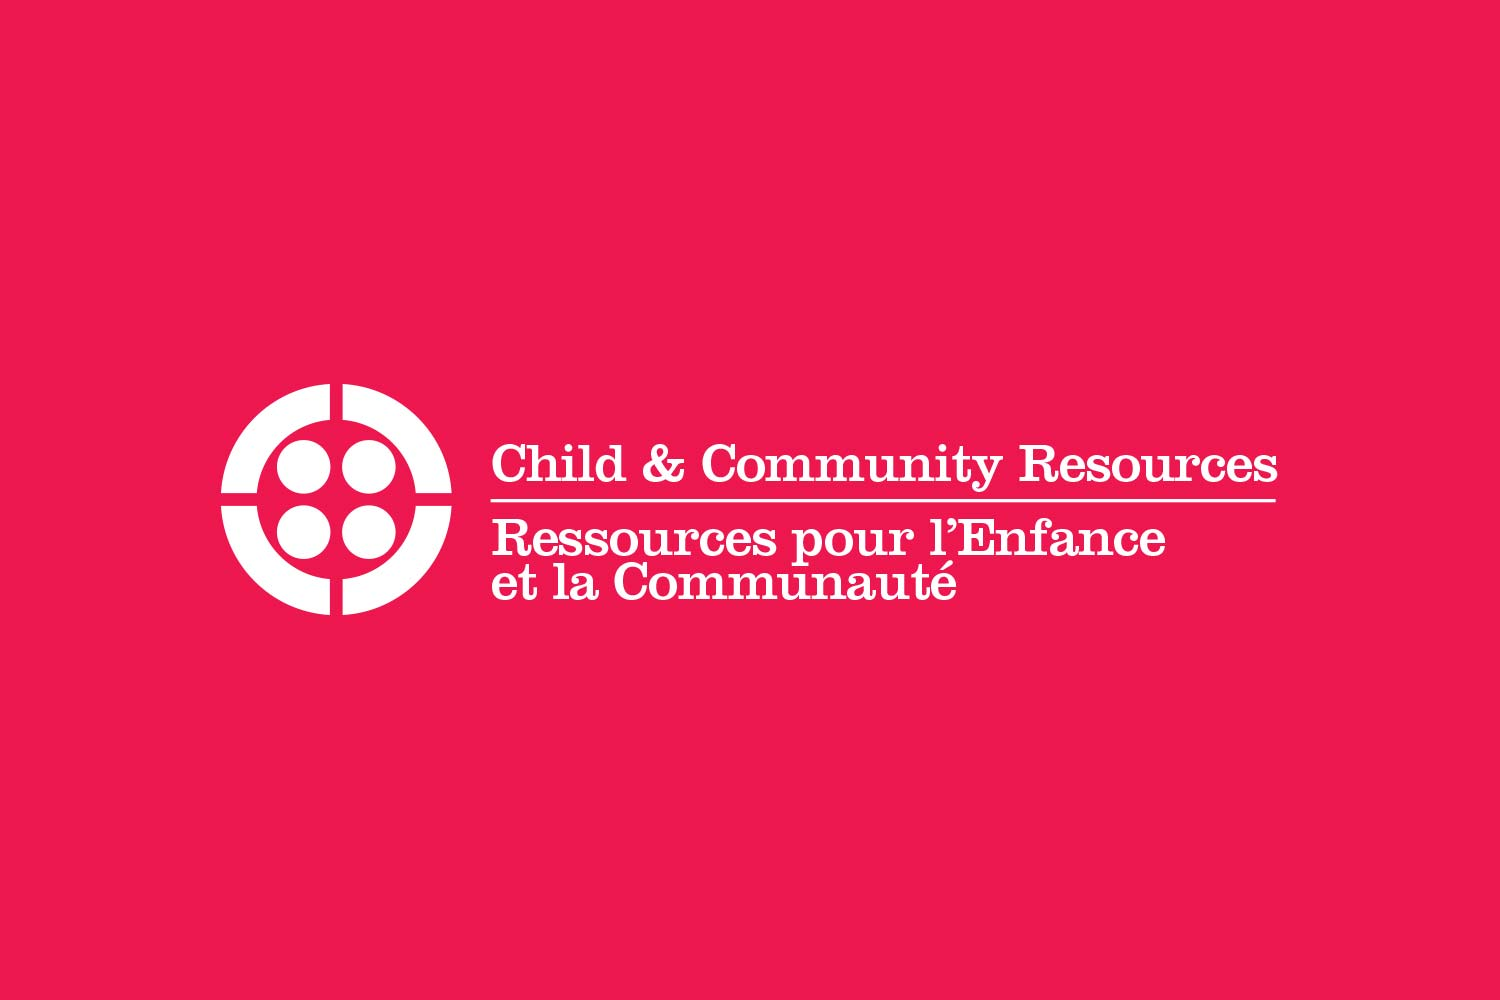 Child & Community Resources